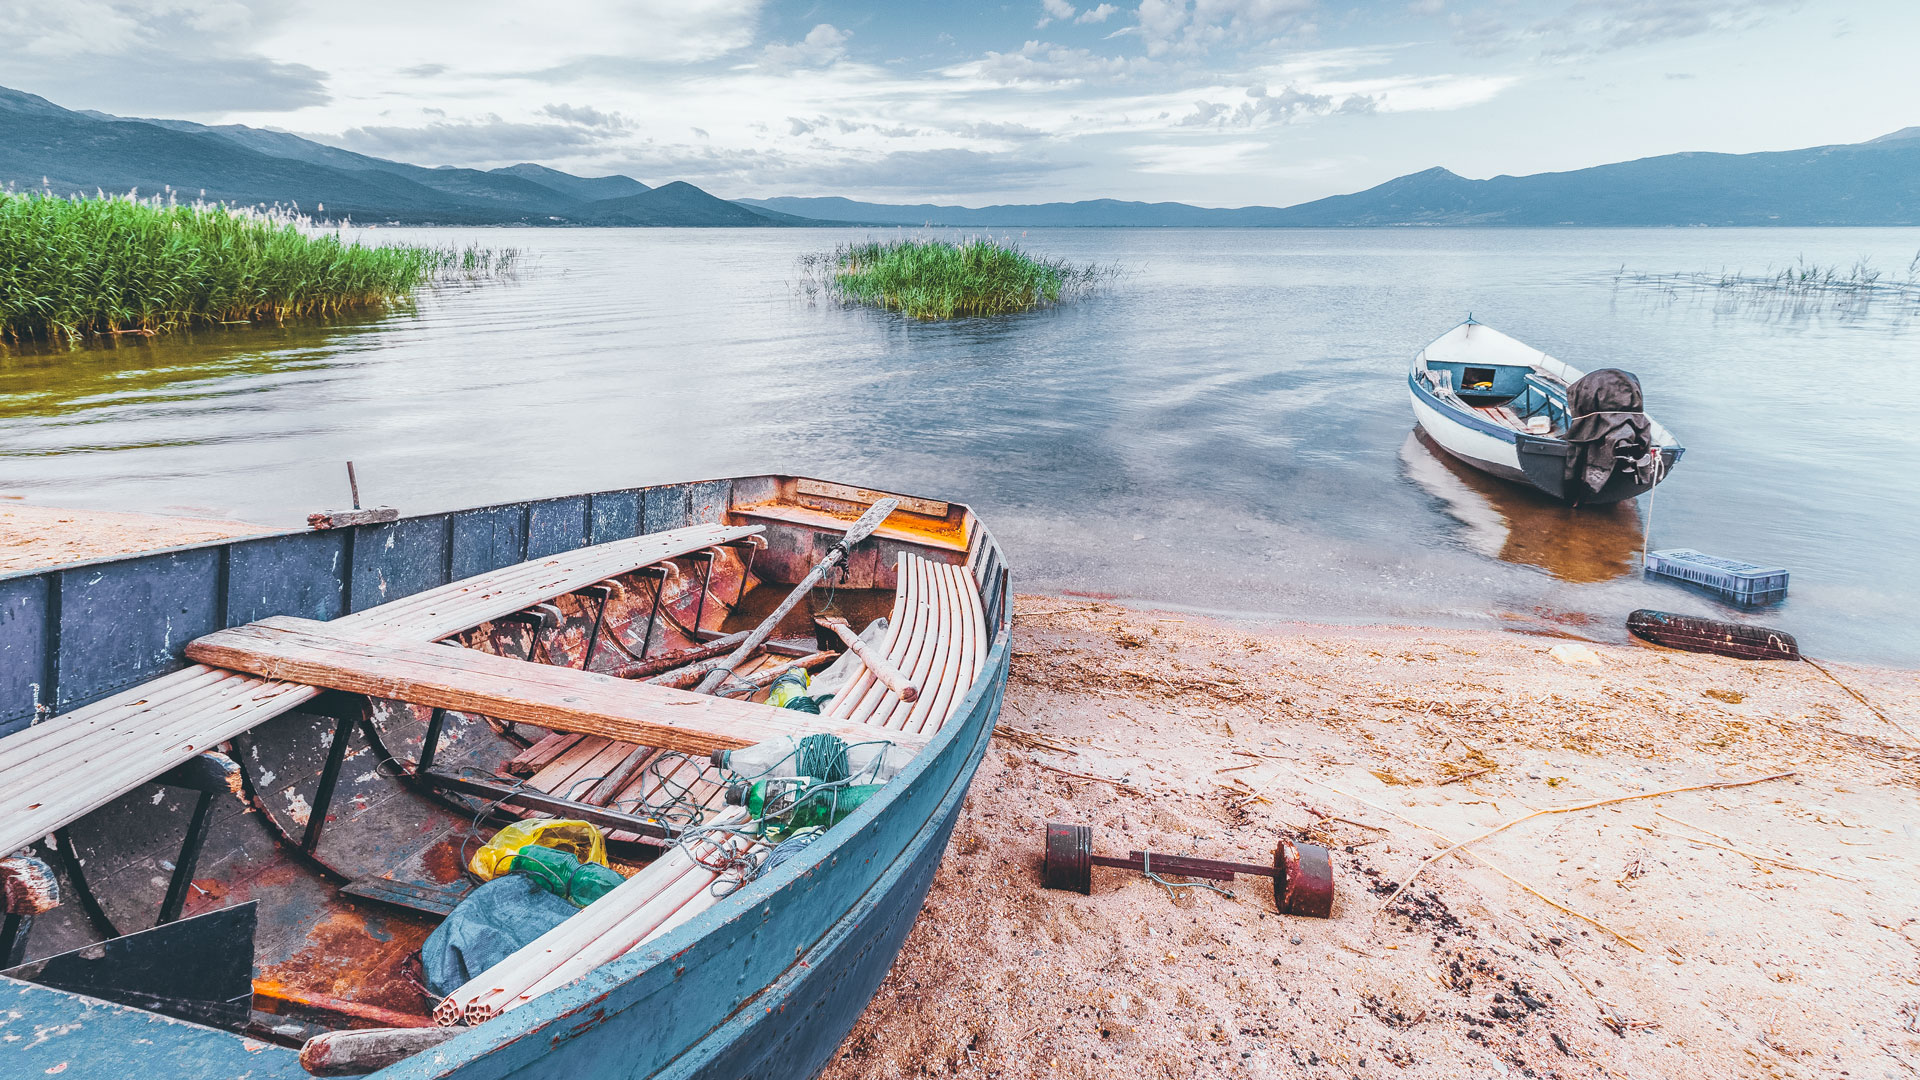 The Prespa Lakes, also known as Prespes, is probably one of Greece's best-kept secrets